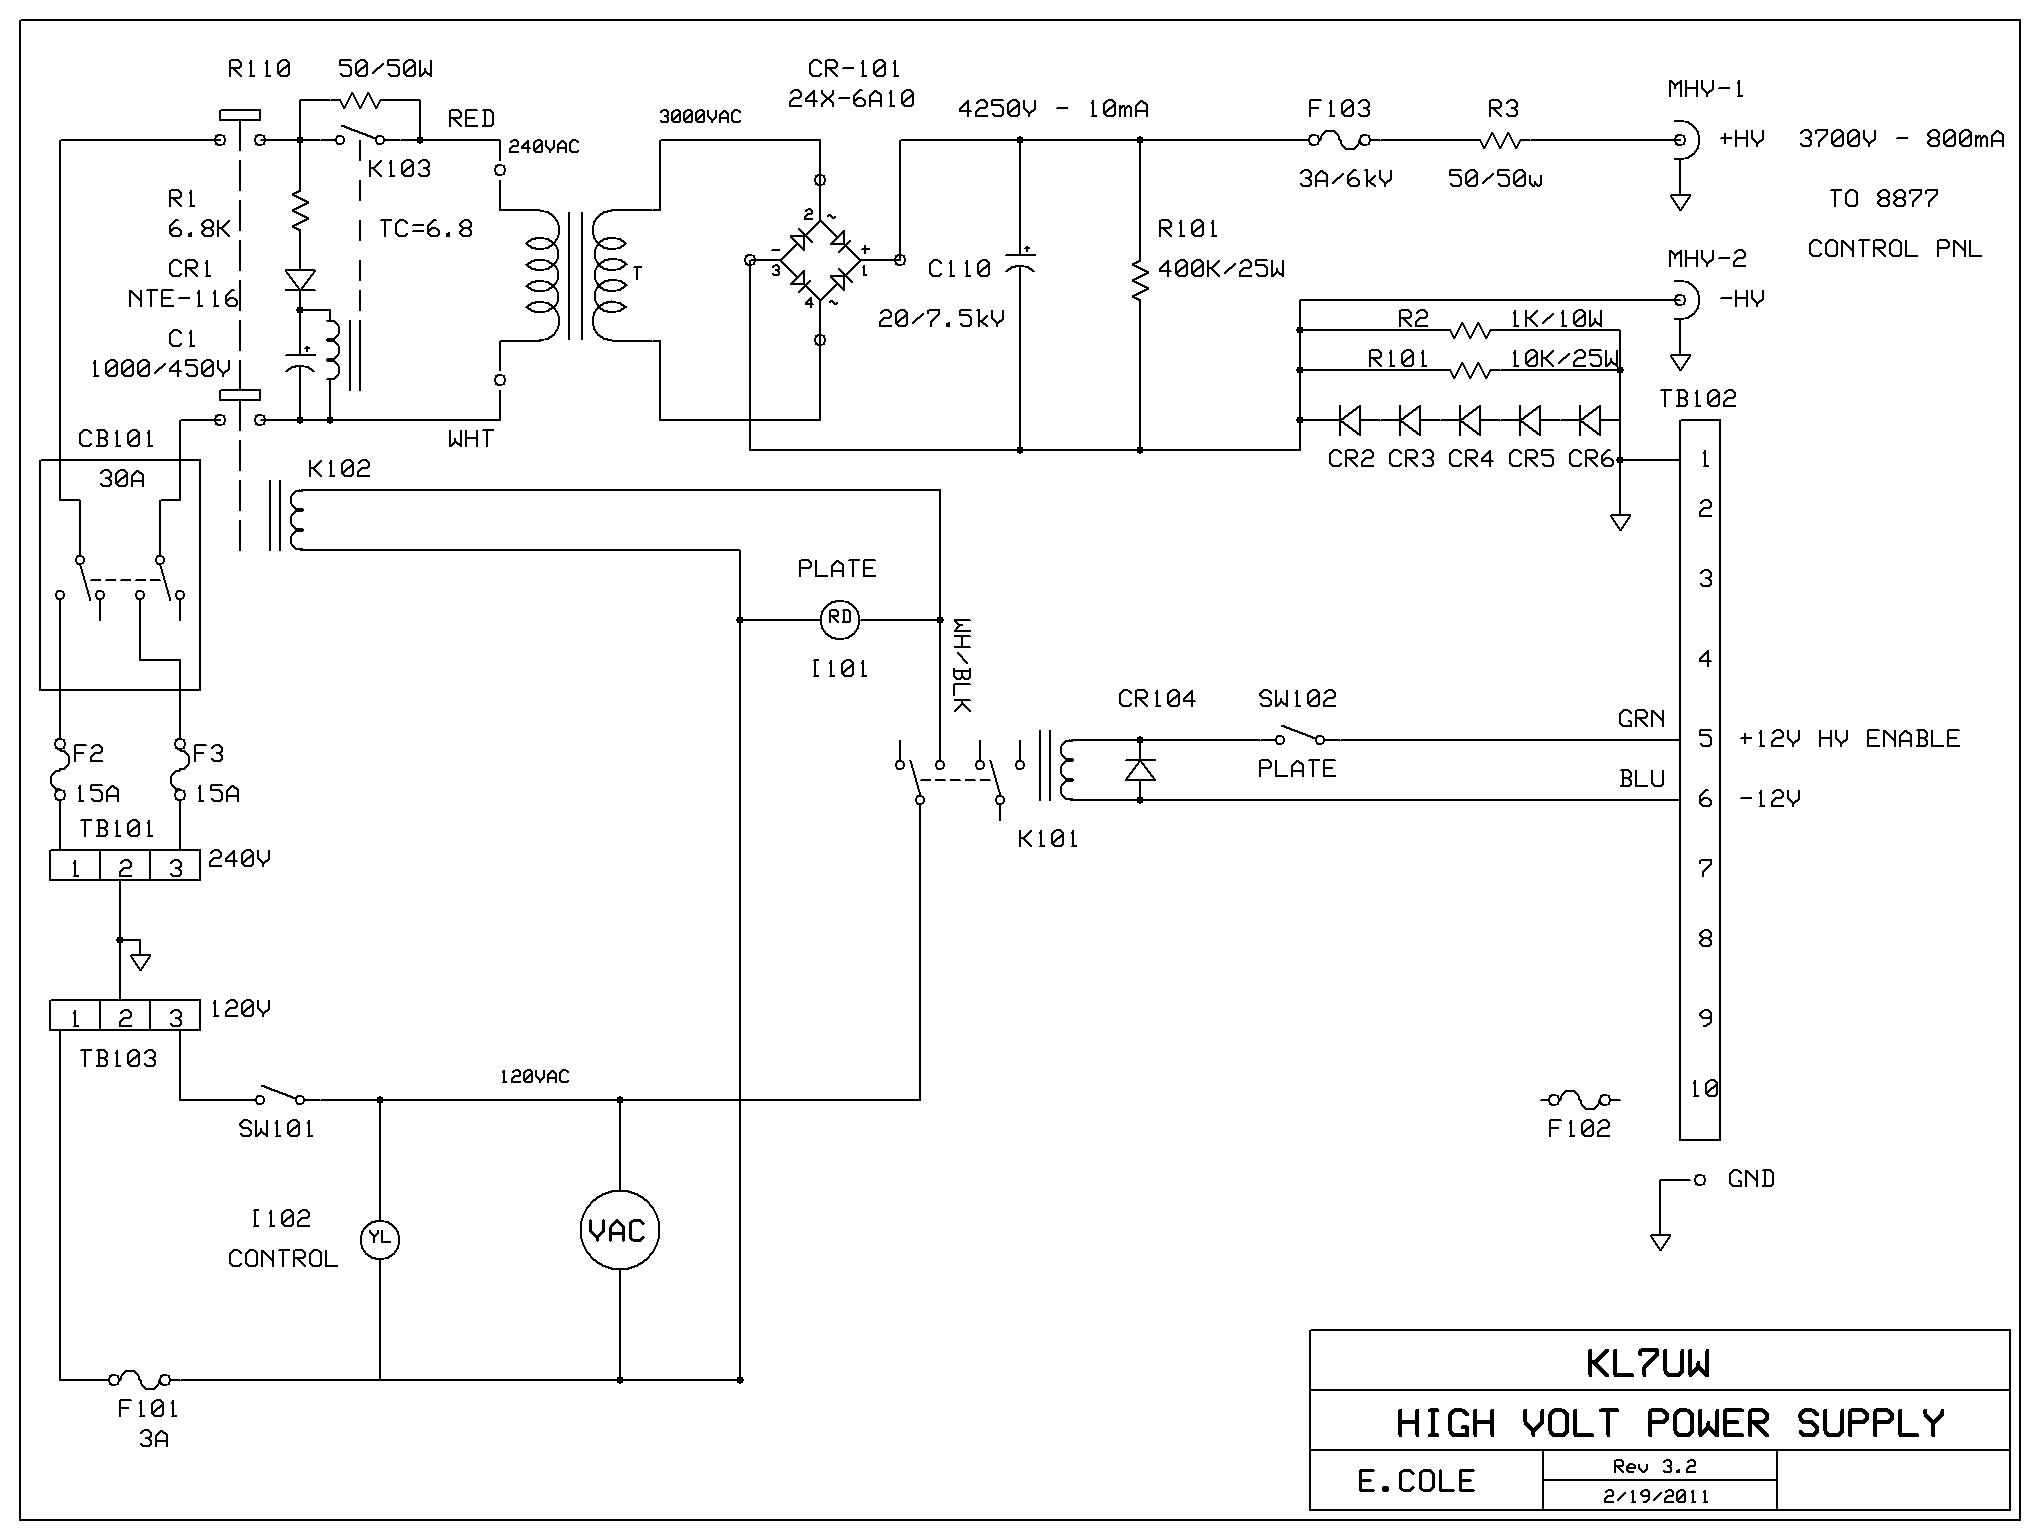 Kl7uw 8877 Amplifier Page How To Make A 25 Amp 1500 Watts Heater Controller Circuit Diagram Qrt